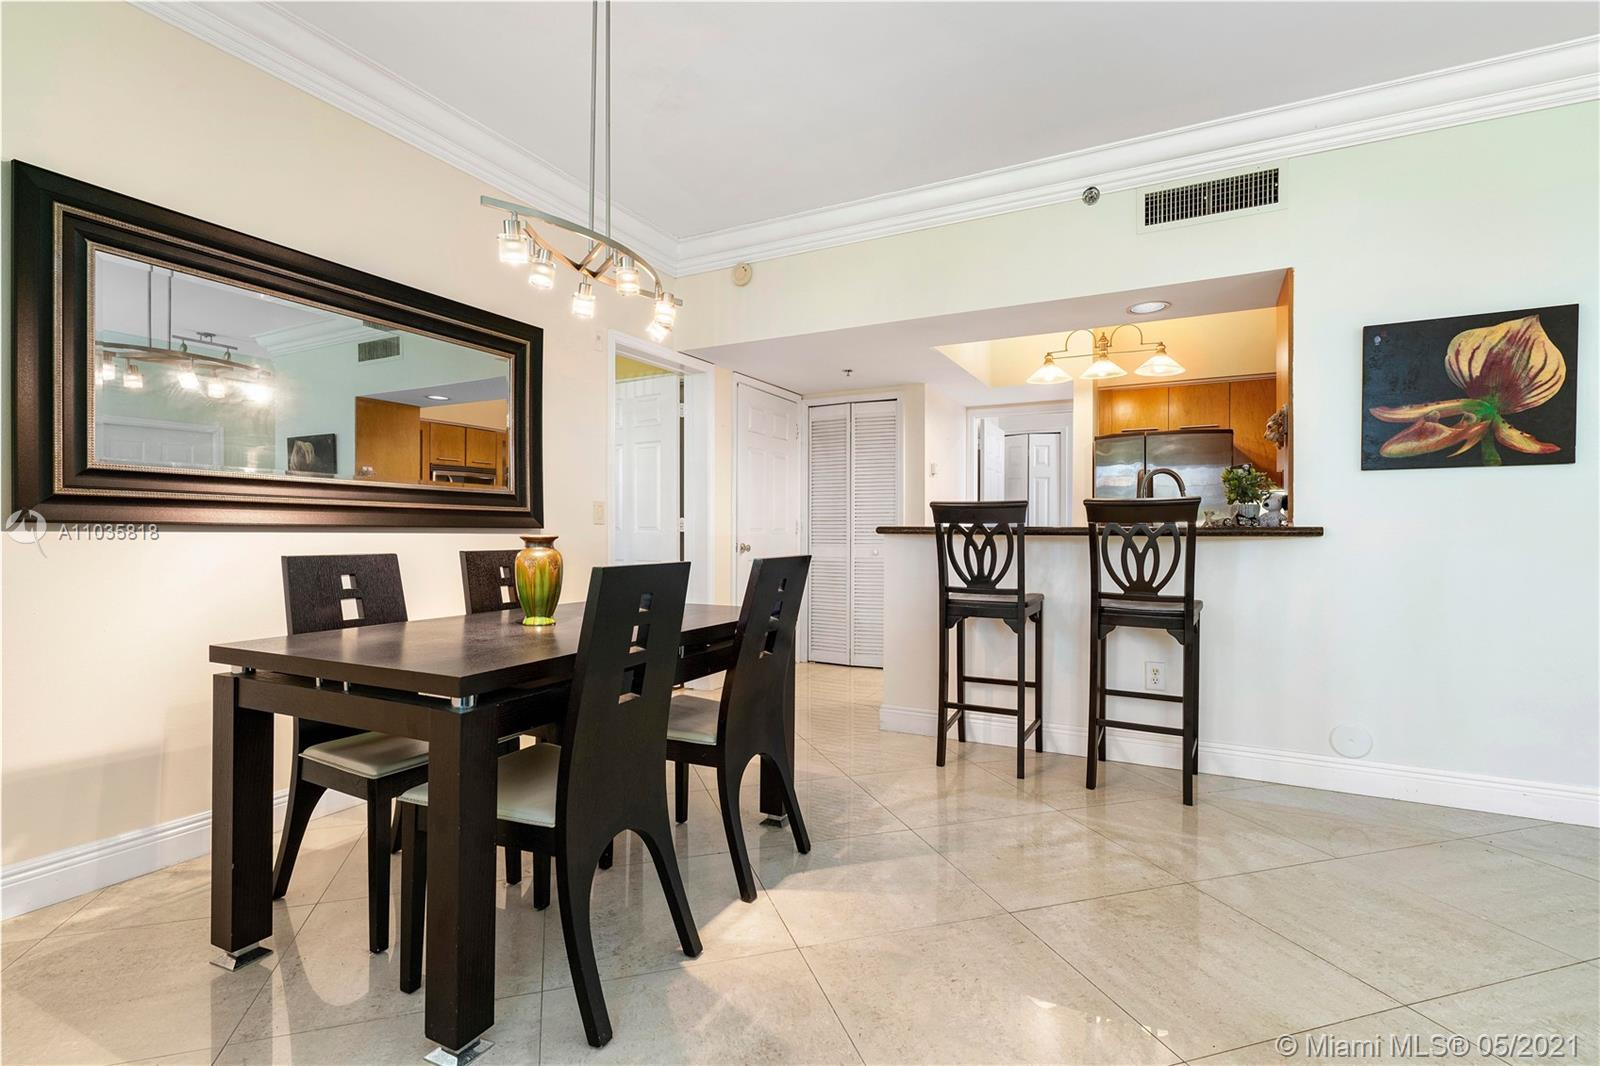 Renovated, Spacious, Cozy 1/1 in the heart of Aventura in very desirable waterfront gated community